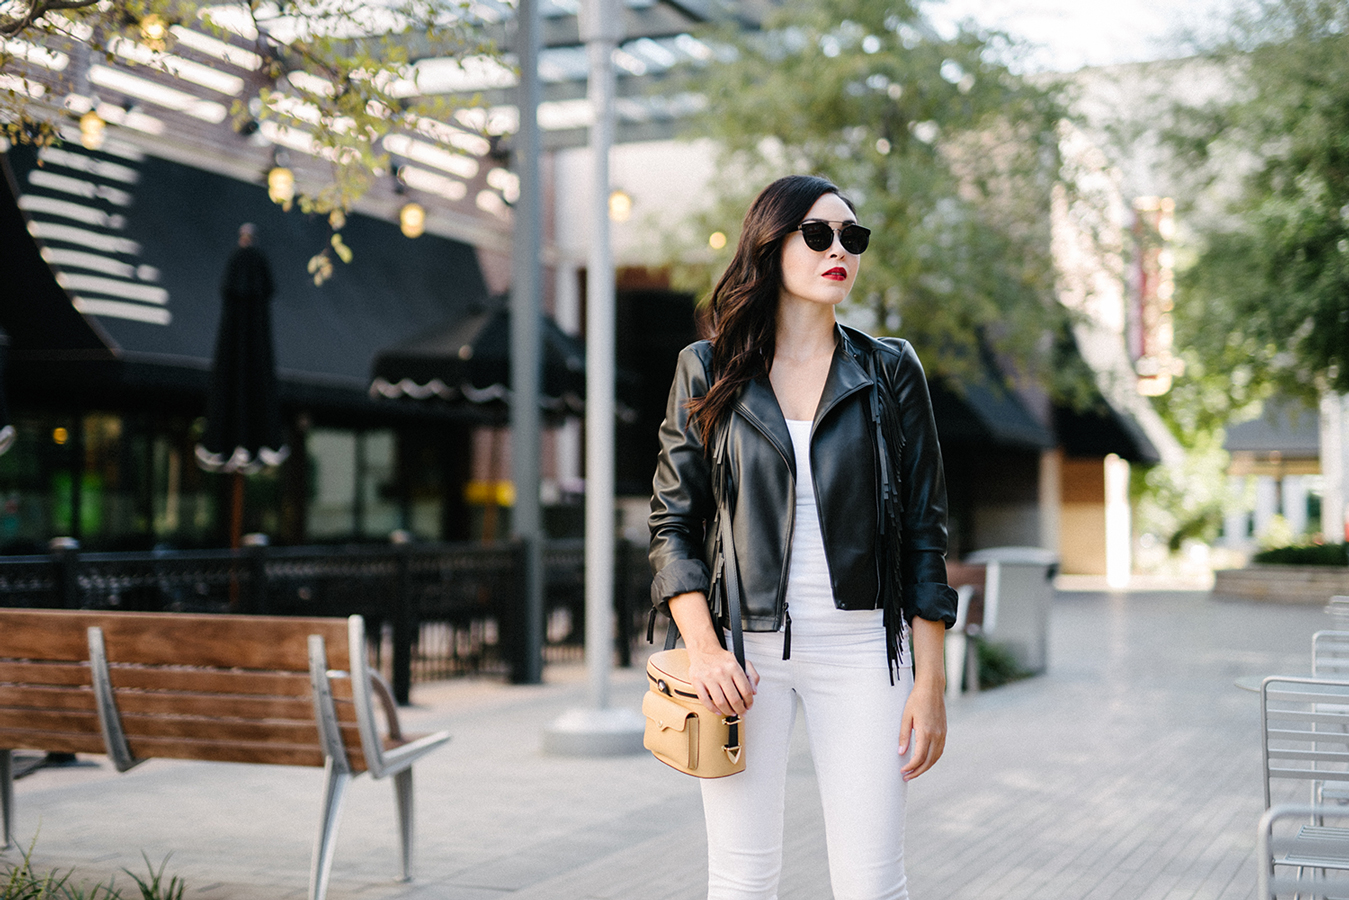 FIXIN-TO-THRILL-EXPRESS-FRINGE-LEATHER-JACKET-REBECCA-MINKOFF-TREND-CARLOS-BARRON-FALL-OCTOBER-ATX-AUSTIN-STYLE-BLOG-FW15-TRENDY-CHIC-GLAM-FASHION-TEXAS-10